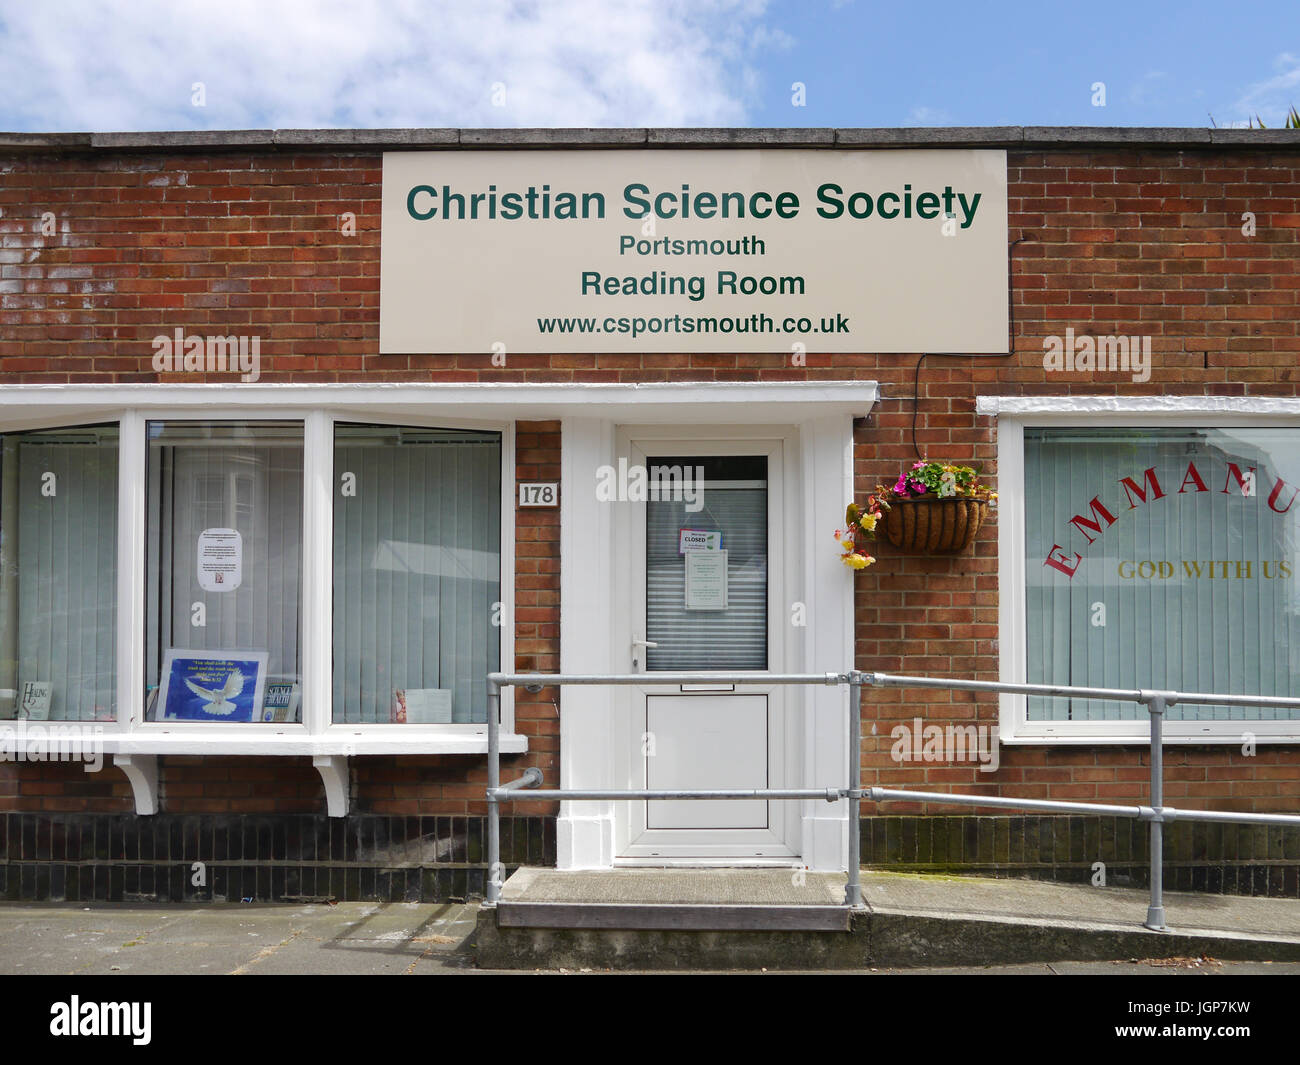 The Christian Science Society reading rooms in North End Portsmouth - Stock Image